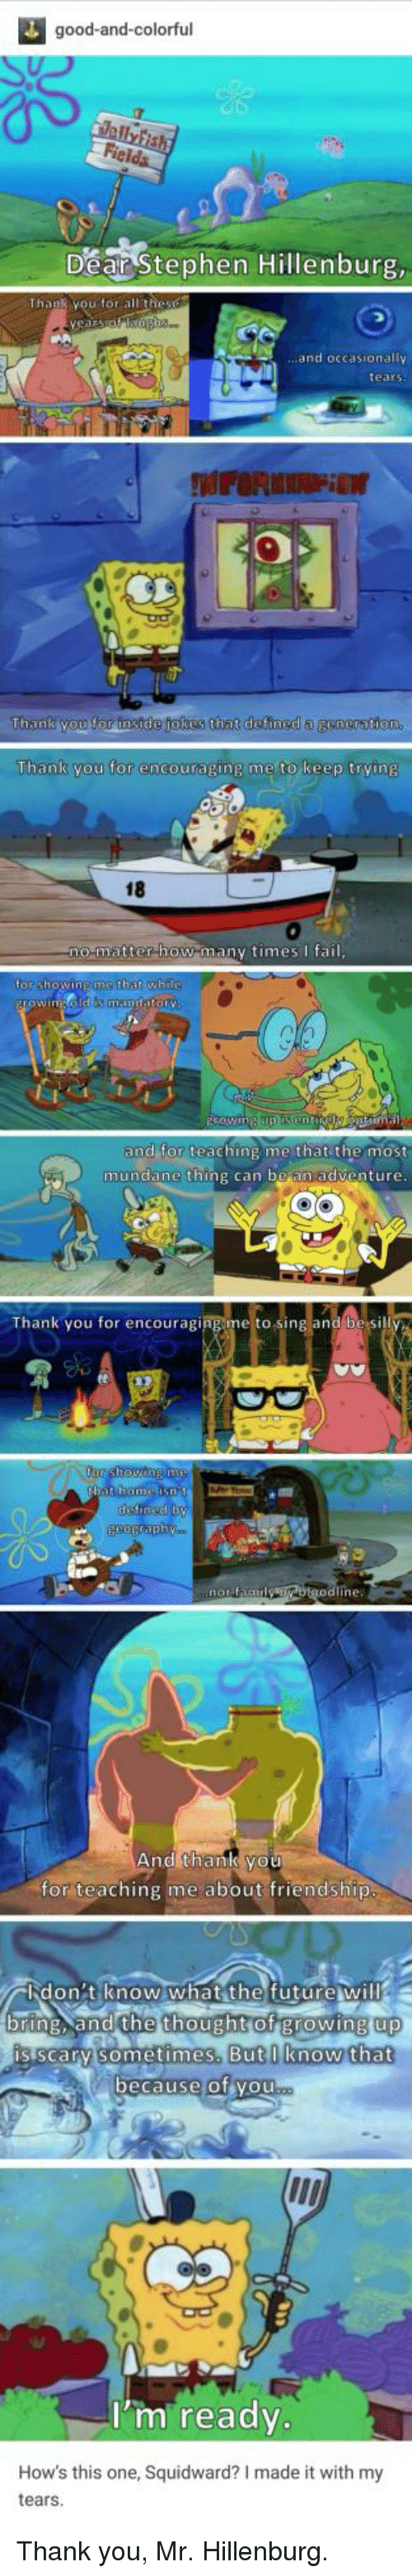 Growing Up, Squidward, and Stephen: good-and-colorful  Dear Stephen Hillenburg  .and occasionally  tears  Thank you for instde jokes that defined a  Thank you for encouraging me to keep trving  18  0  matter how manv timesfai  or shOWINE  that whi  and for teaching me that the most  mundane thing can be an adventure  Thank you for encouraging me to sing and be si  ine:  And thank you  for teaching me about friendship  バlid on : tien0w.what the futurew ill  up  bring. and the thought of growing up  is scarv sometimes. Butlknow that  ecause of vou  I'm ready.  How's this one, Squidward? I made it with my  tears Thank you, Mr. Hillenburg.